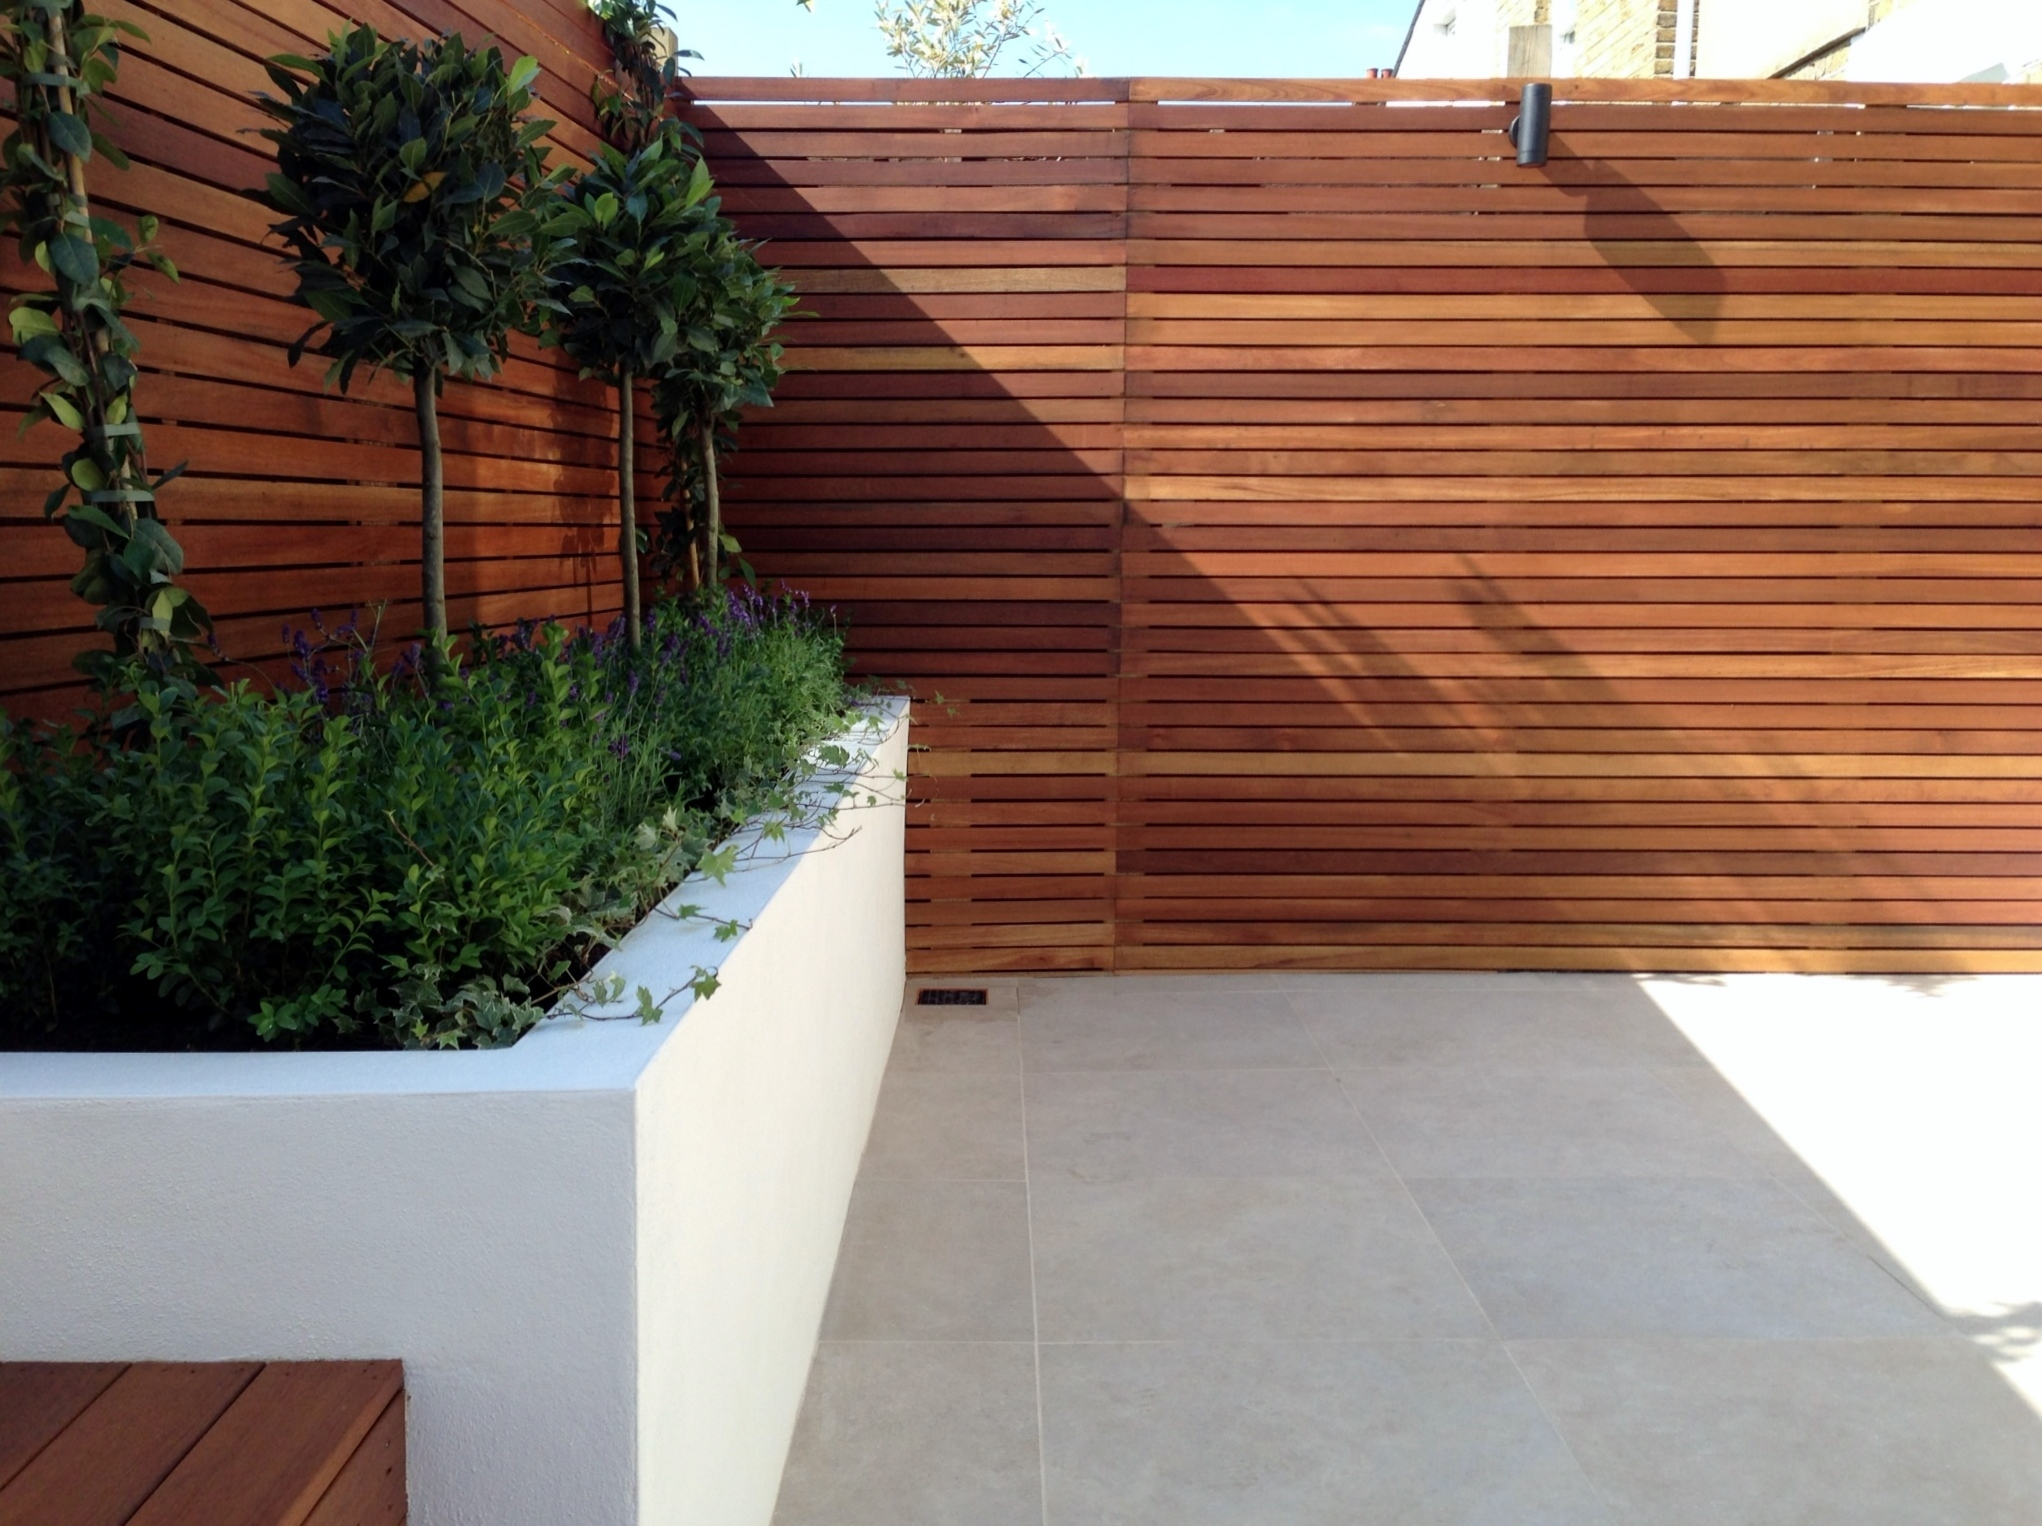 London garden blog london garden blog gardens from for Screening walls for gardens